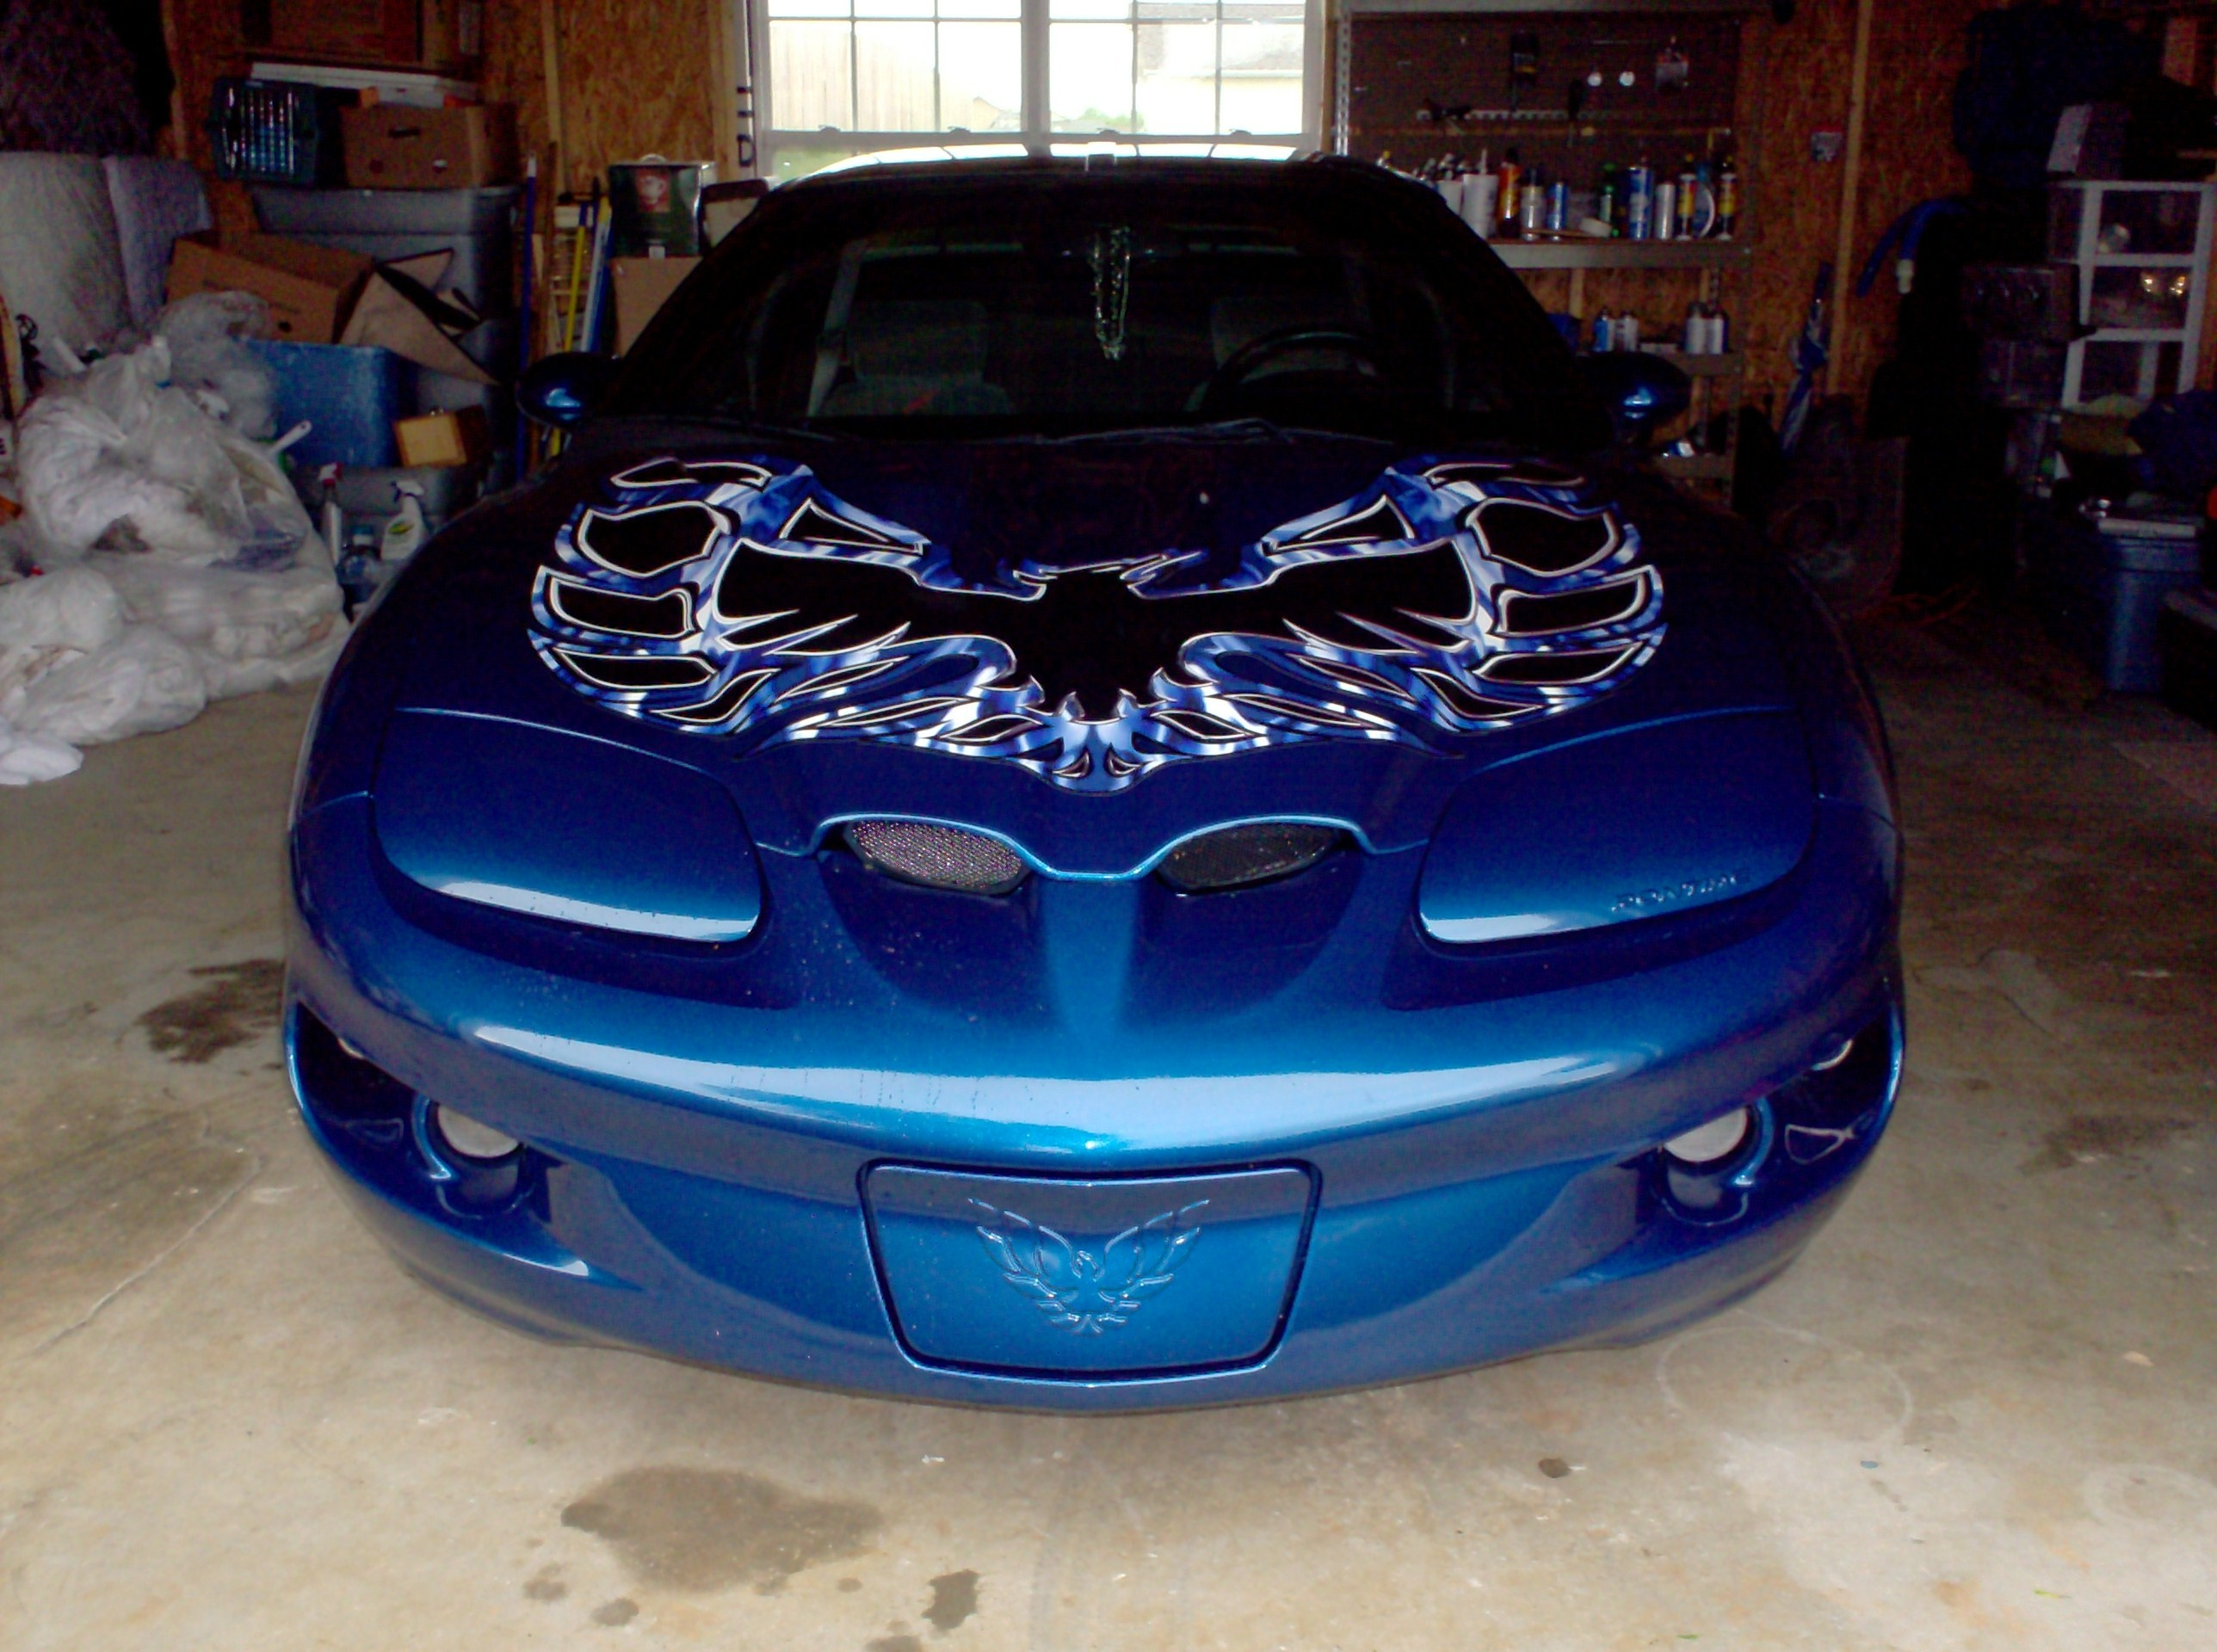 wildbird772's 2000 Pontiac Firebird